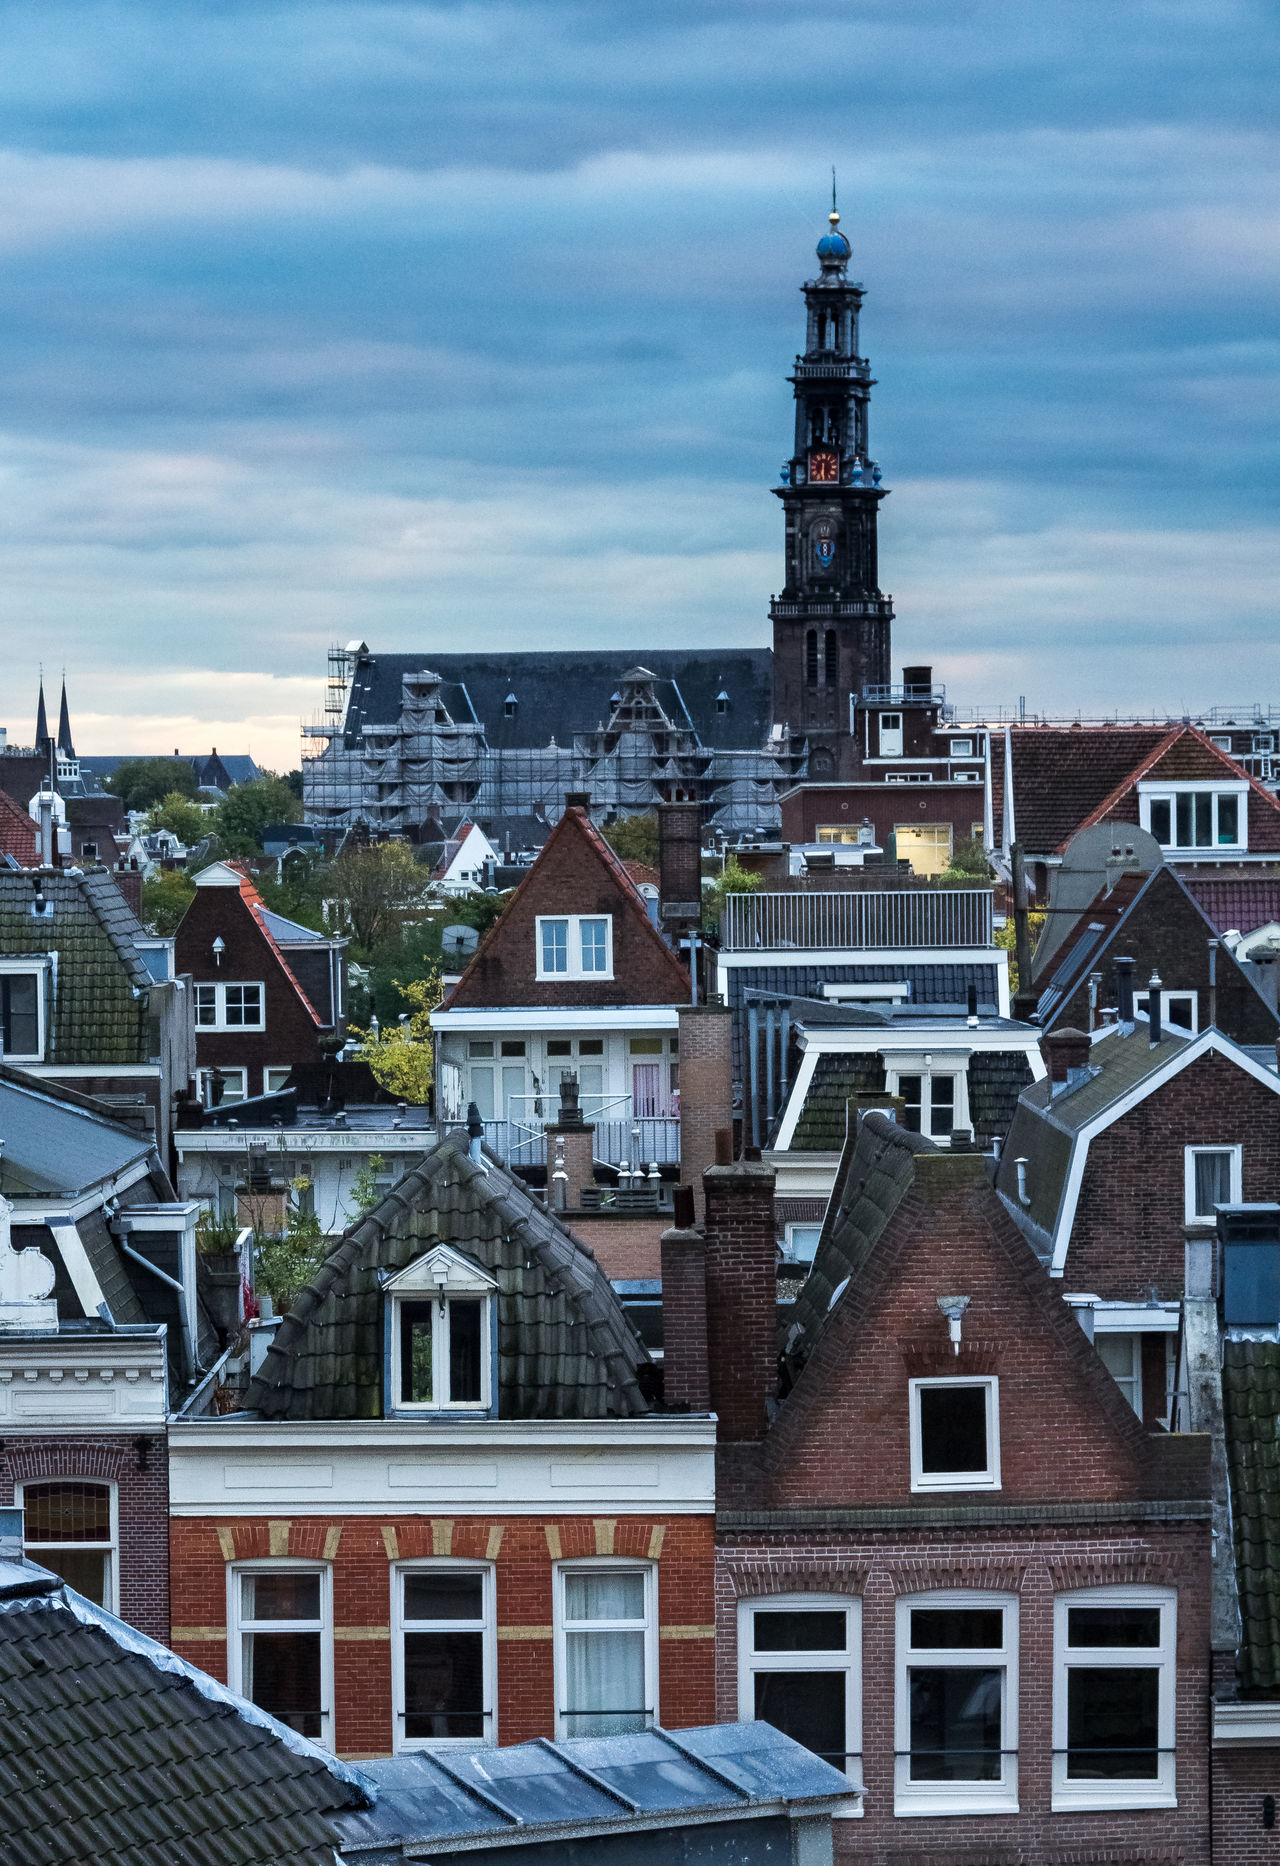 Amsterdam Church Tower Cityscape Cloud - Sky Dutch Holland Jordaan Moody Sky Netherlands Residential District Rooftops Travel Destinations Westerkerk Windows